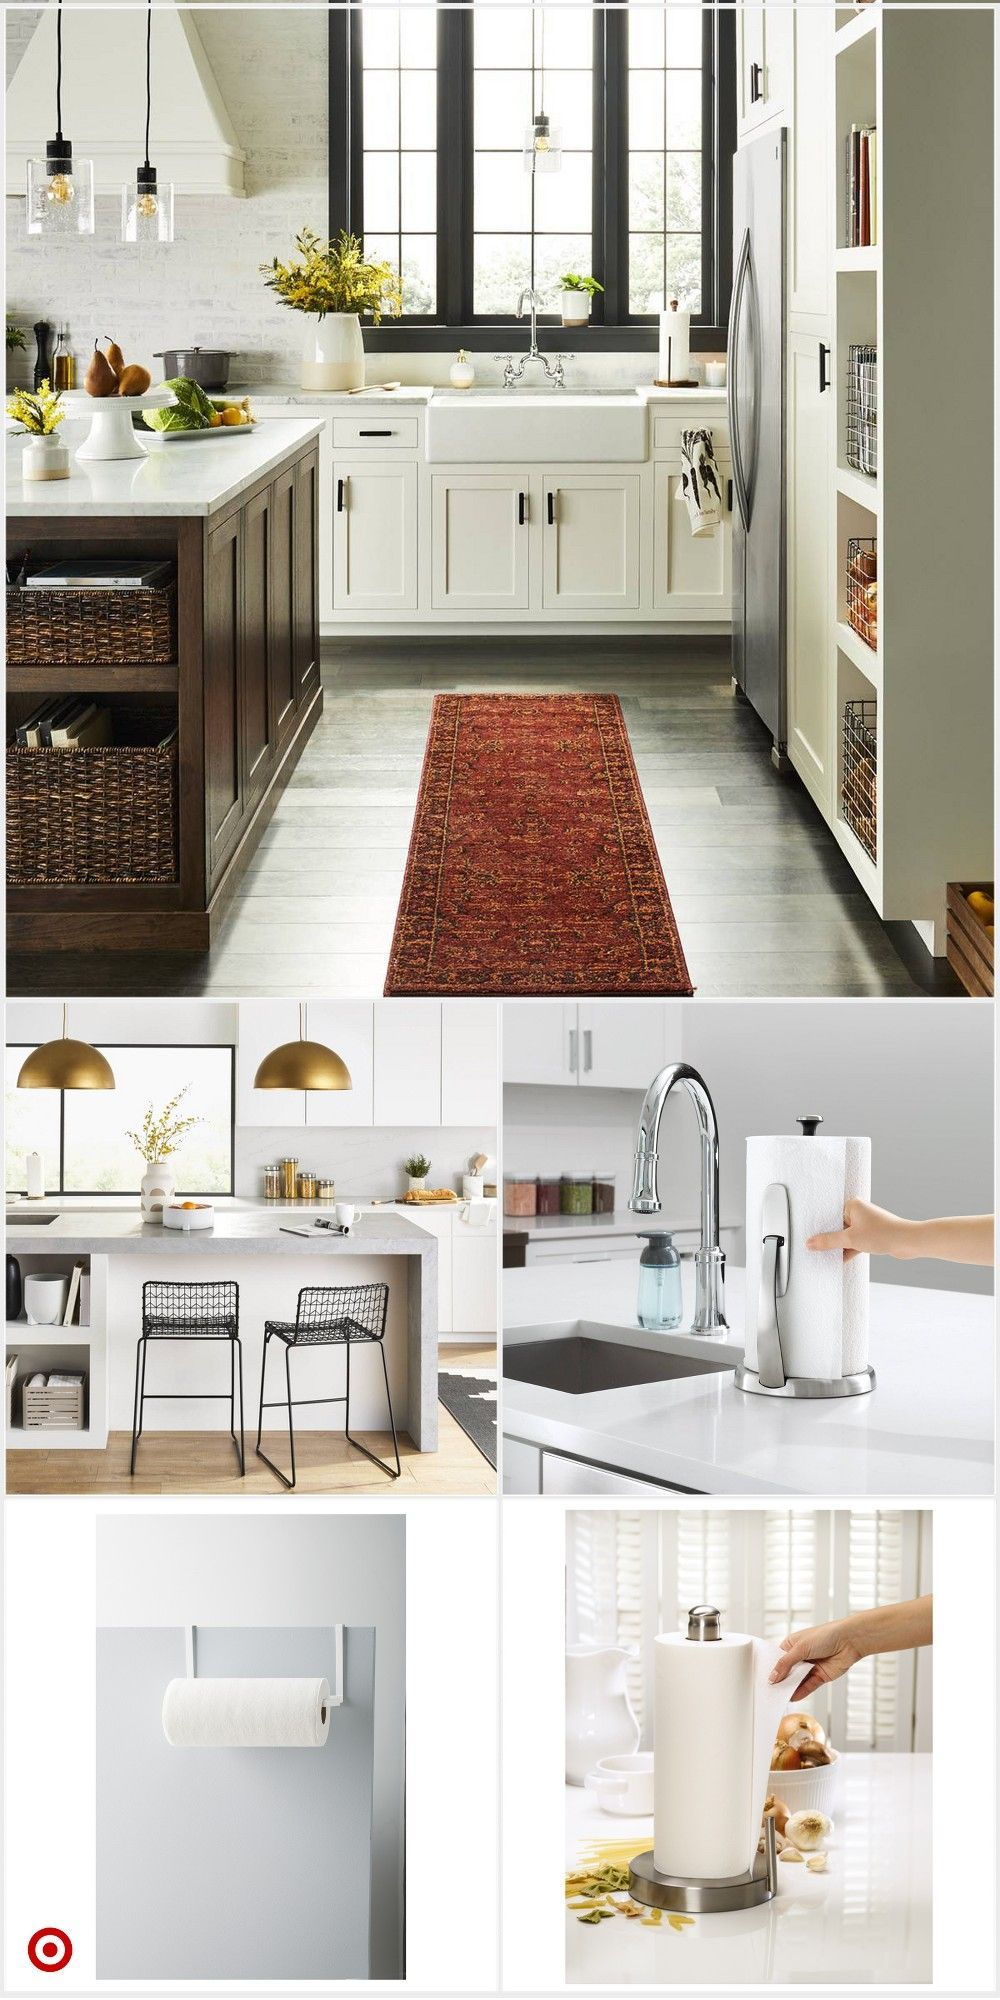 Shop Target For Paper Towel Holder You Will Love At Great Low Prices Free Shipping On Orders Of Home Decor Kitchen Kitchen Remodel Small Home Kitchens